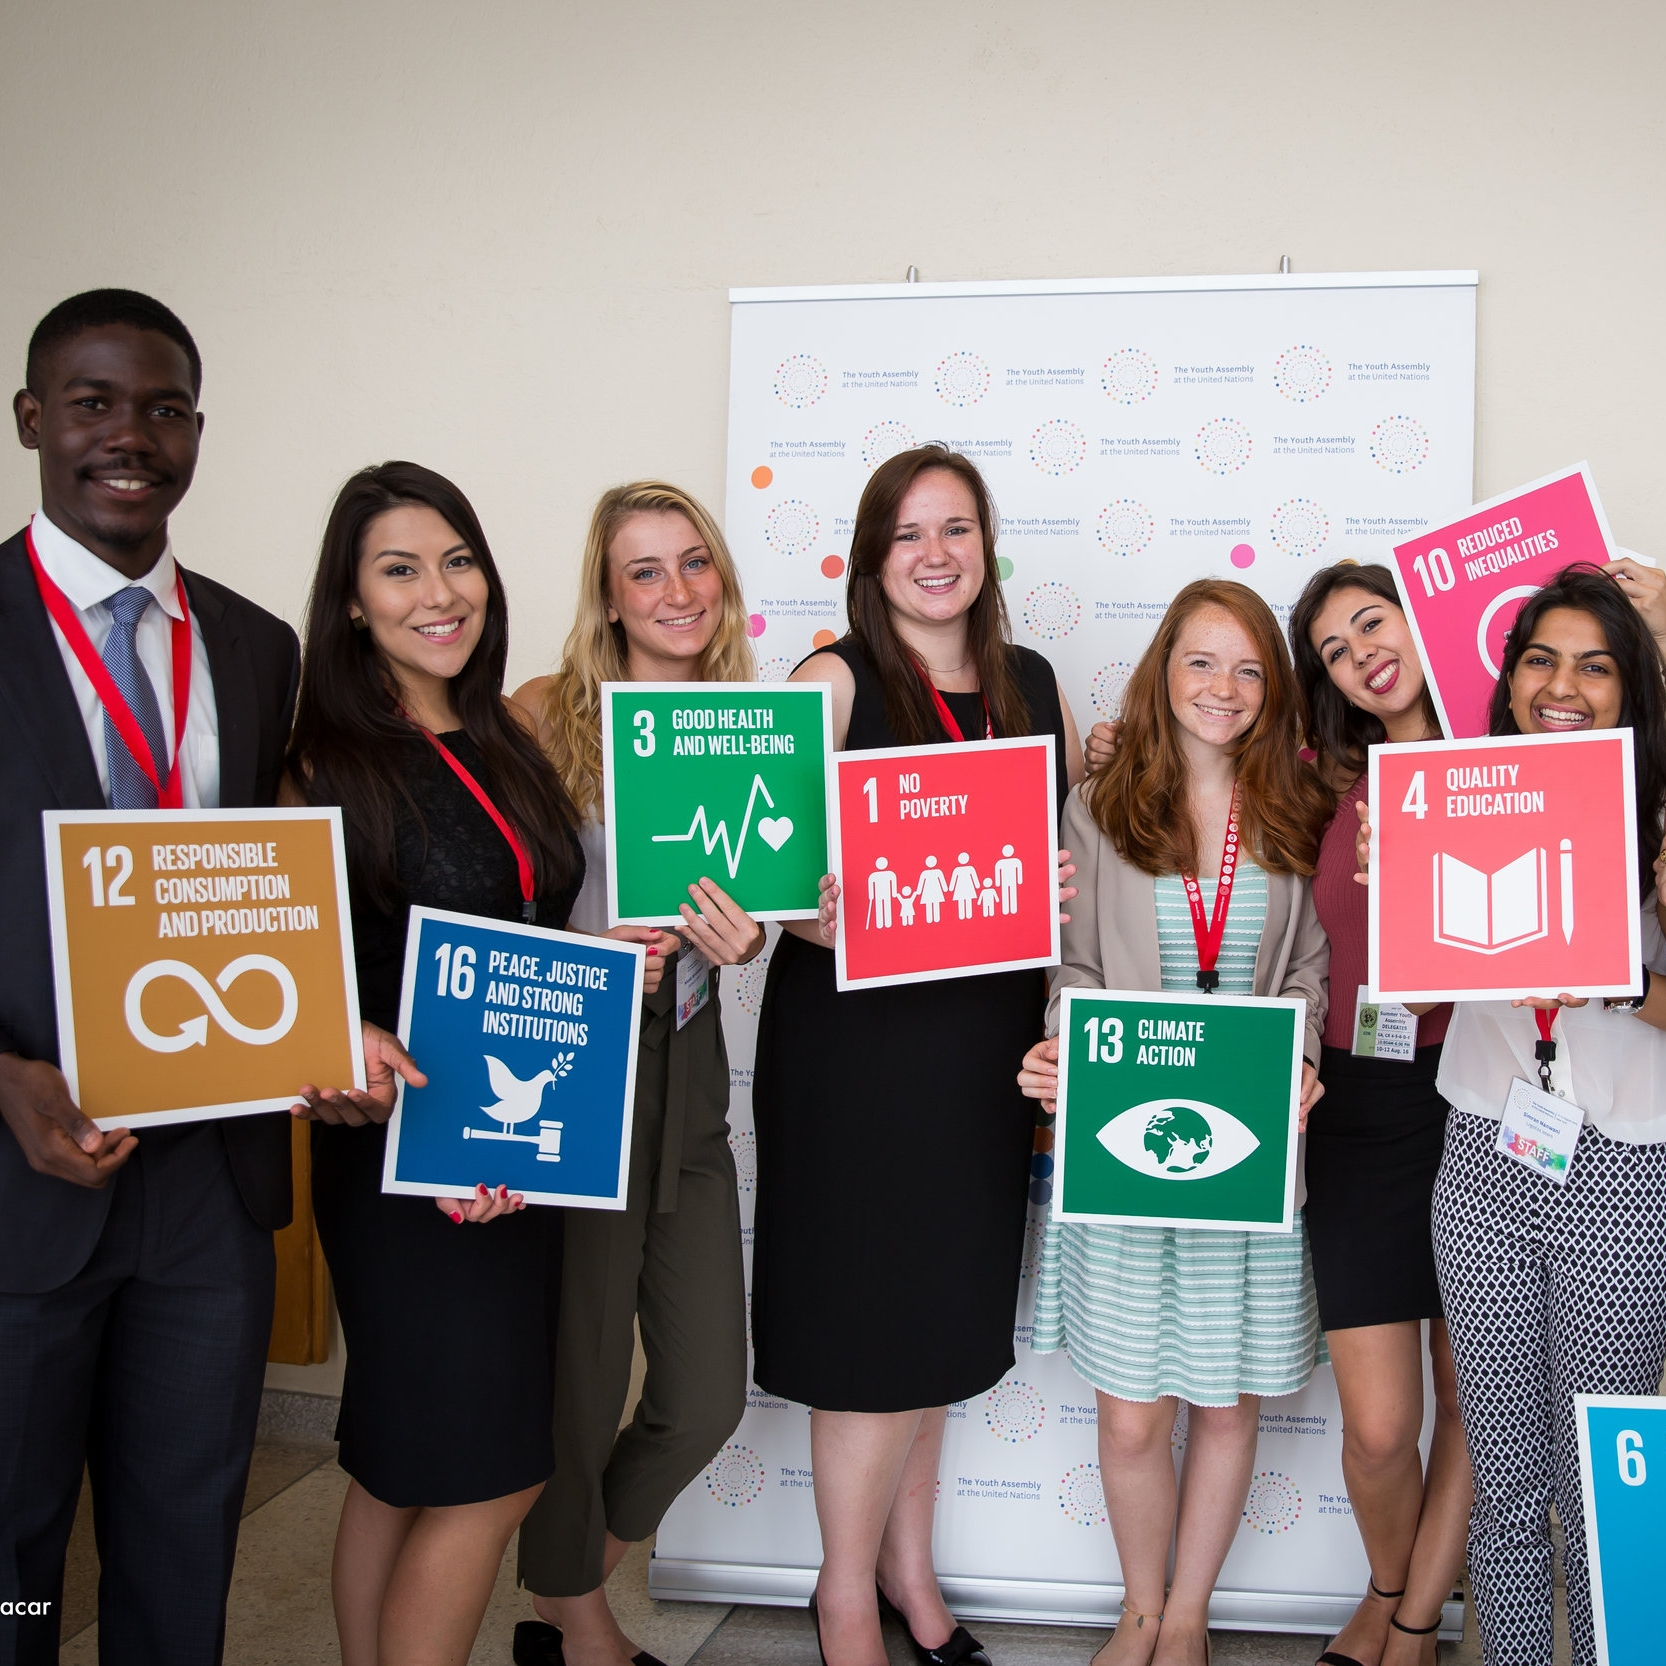 Create game-changing solutions for the SDGs - Participate in The Youth Assembly Impact Challenge →